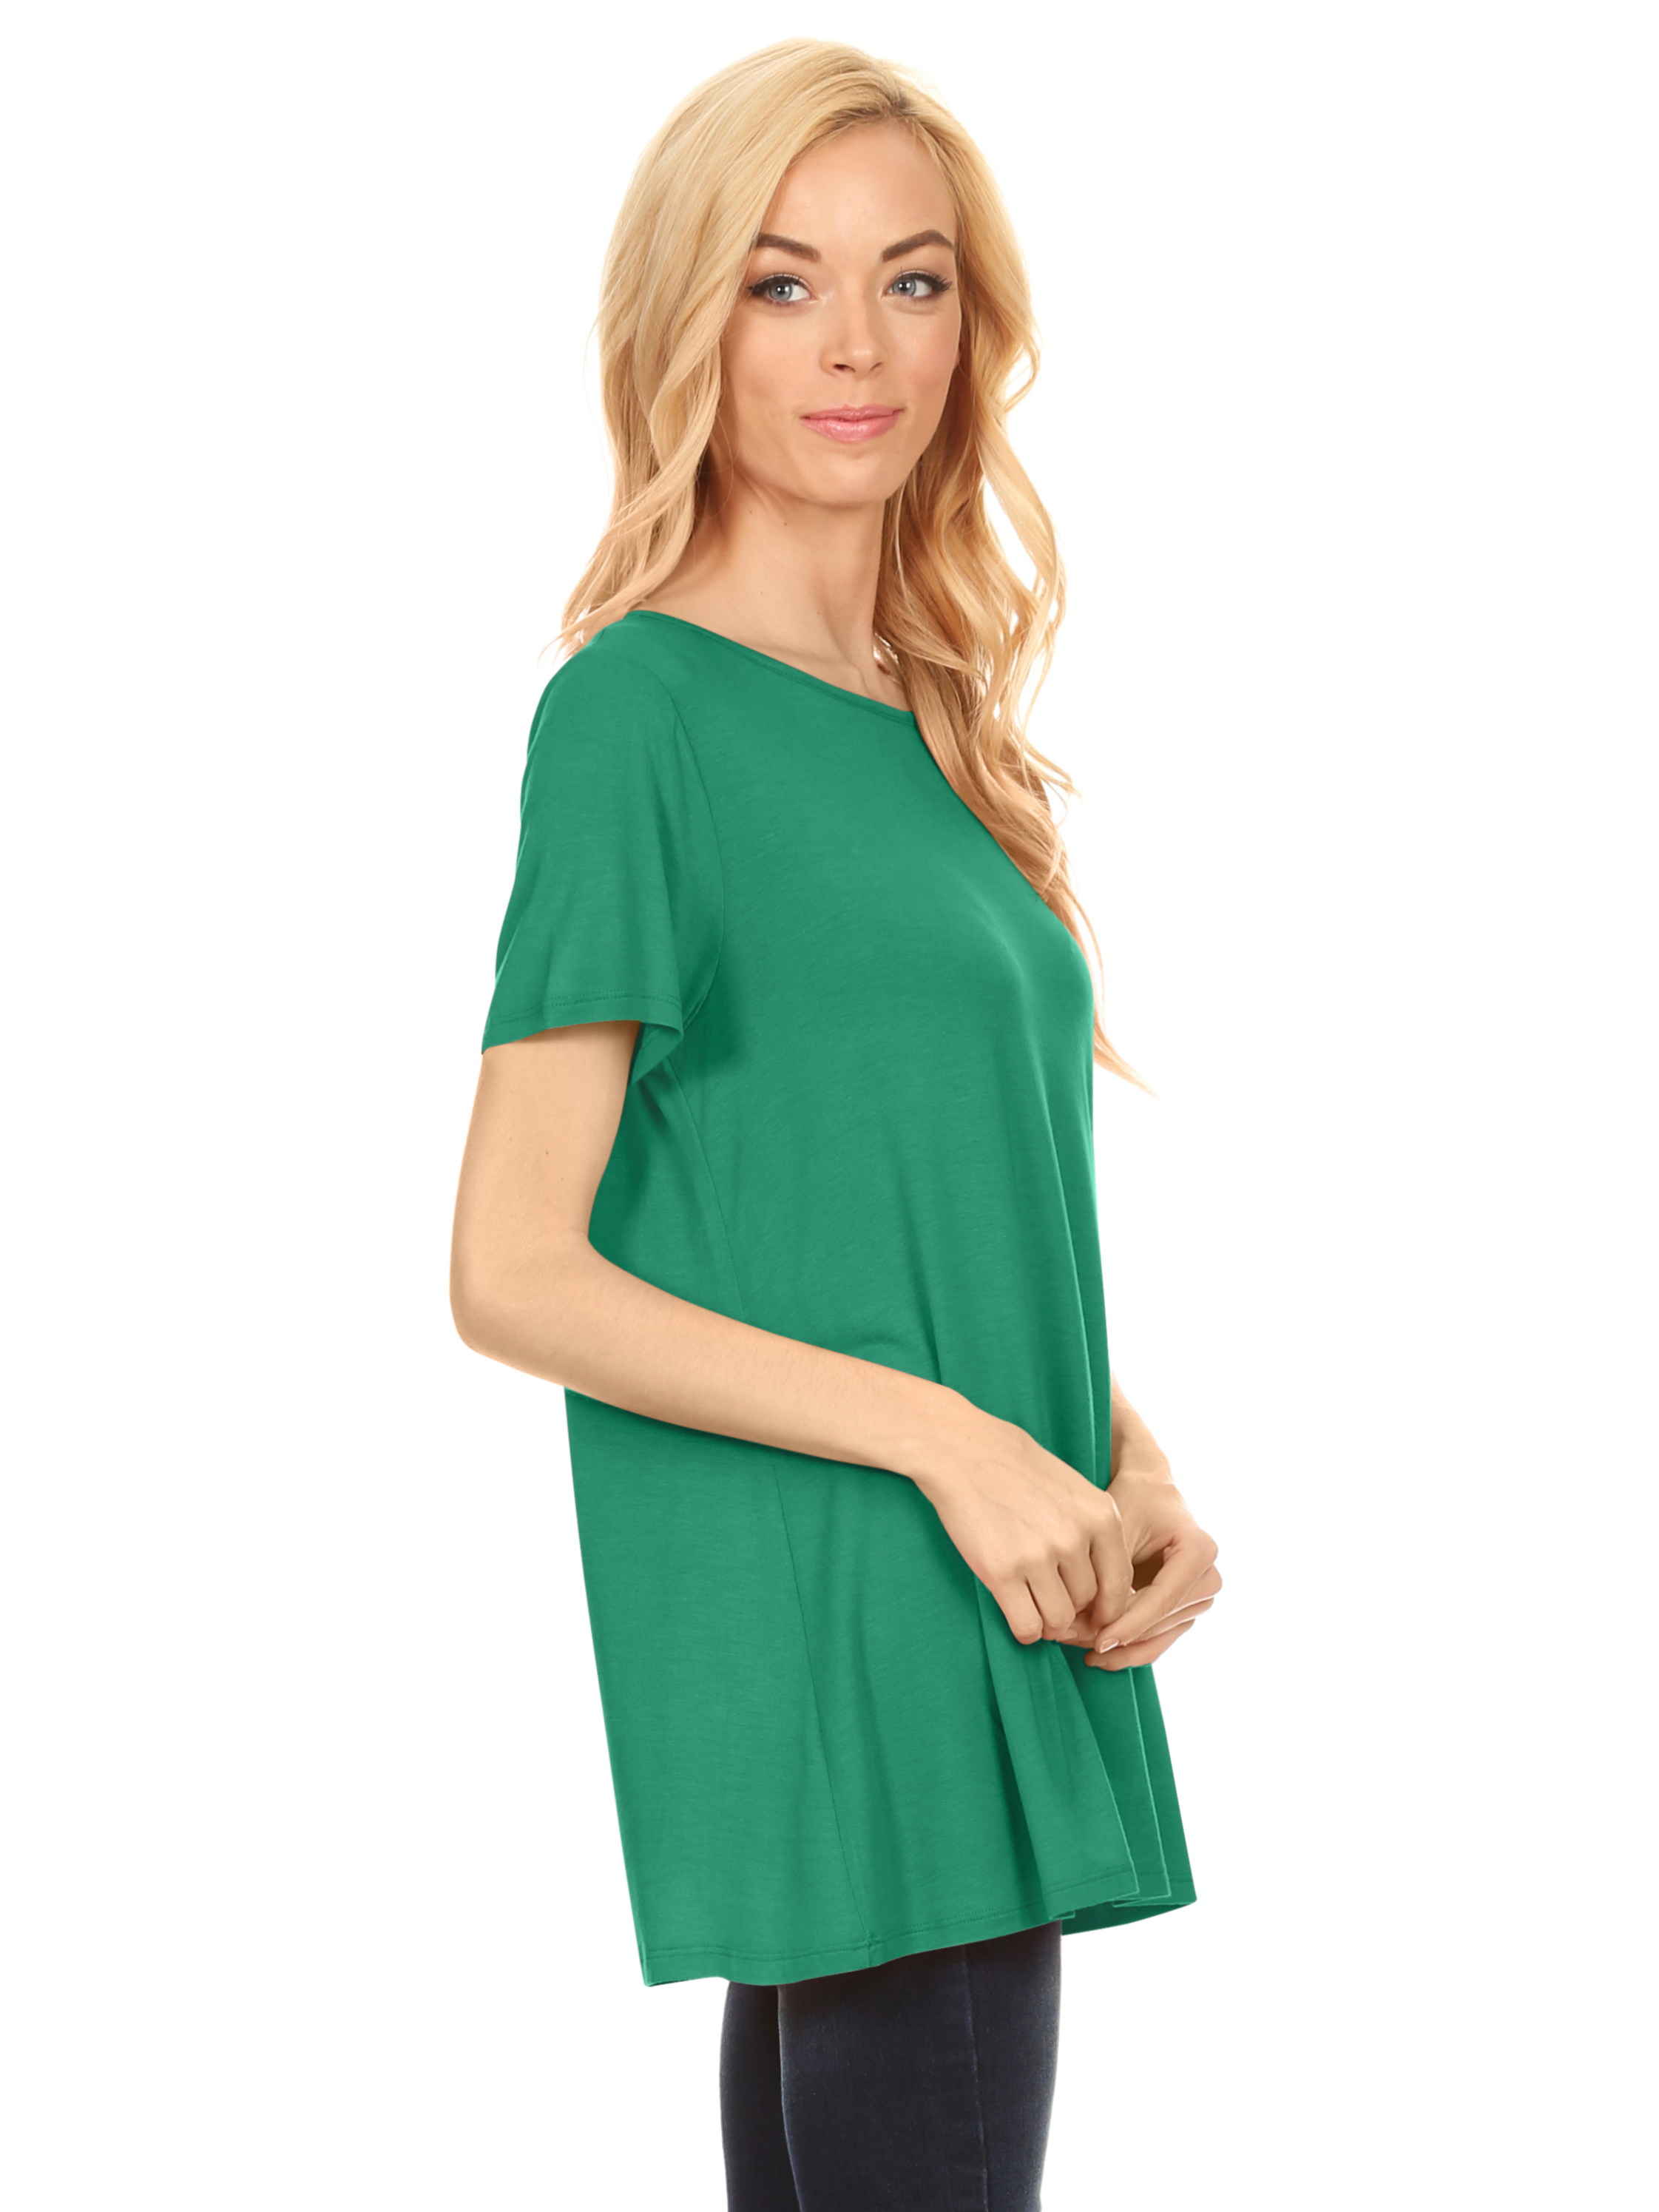 3257b79fd33683 Short Sleeve Flowy Tunic Tops for Women a Line Flared Loose Fit Swing Top -  USA